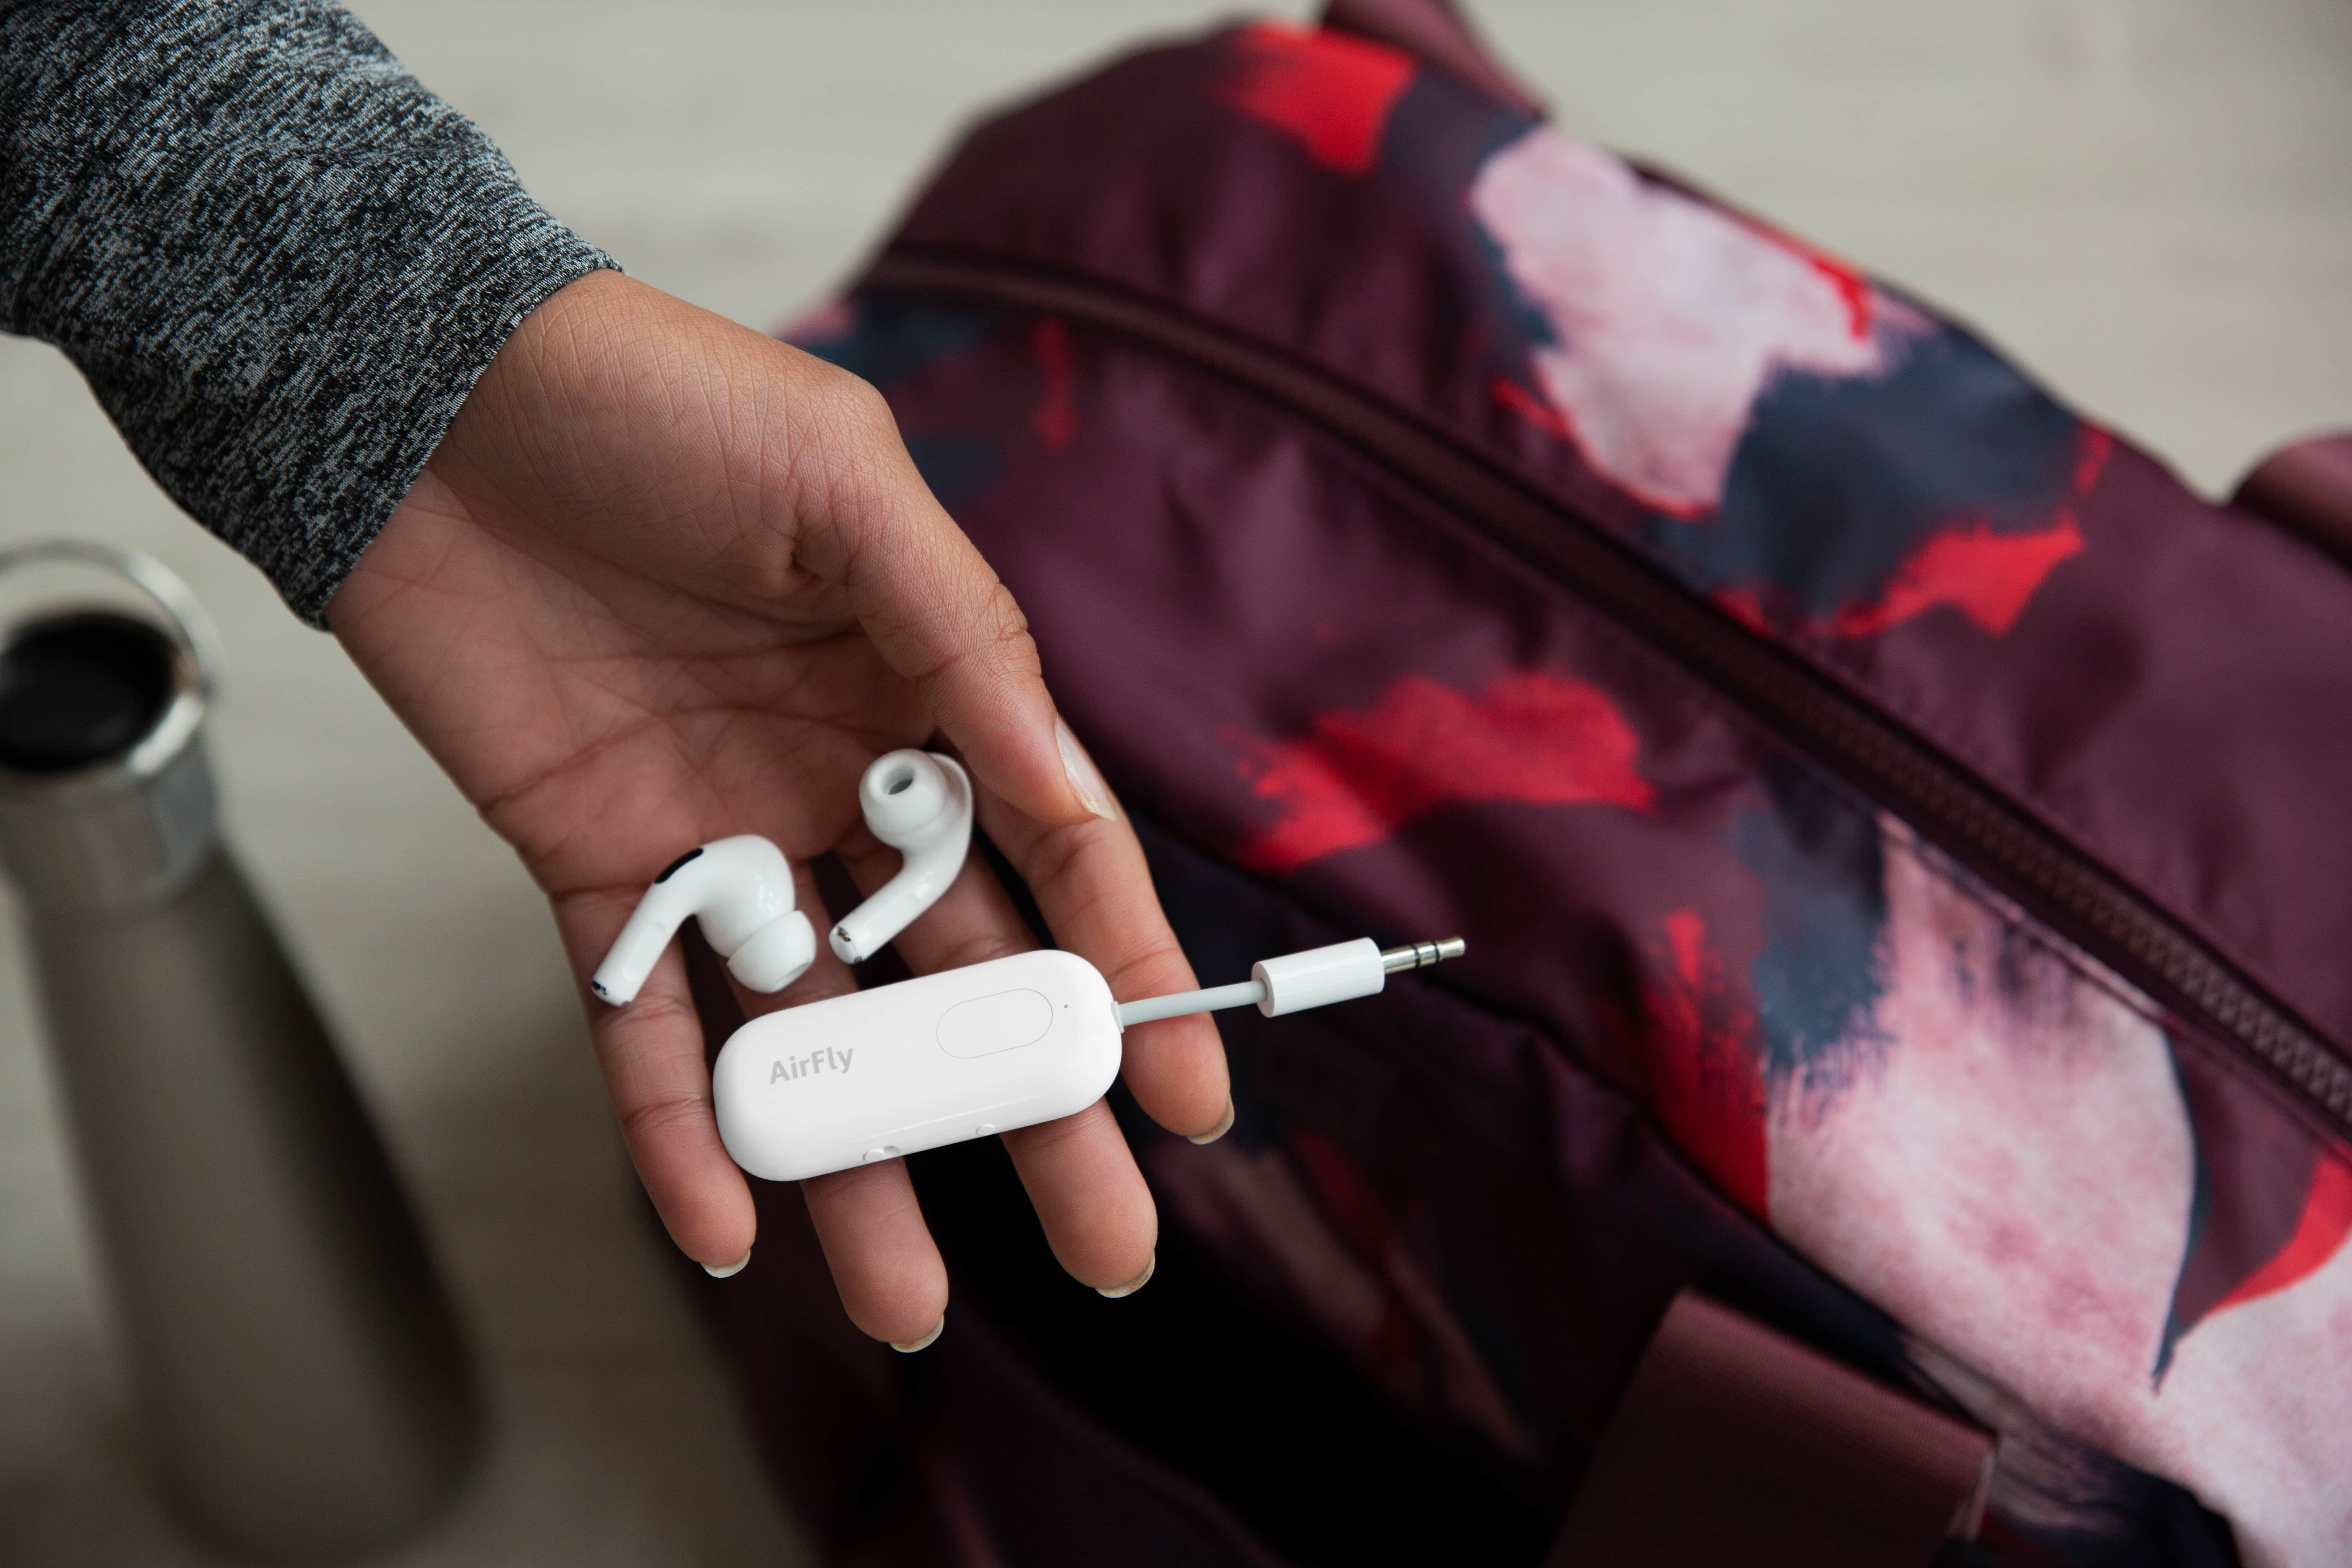 AirFly-Pro-AirPods